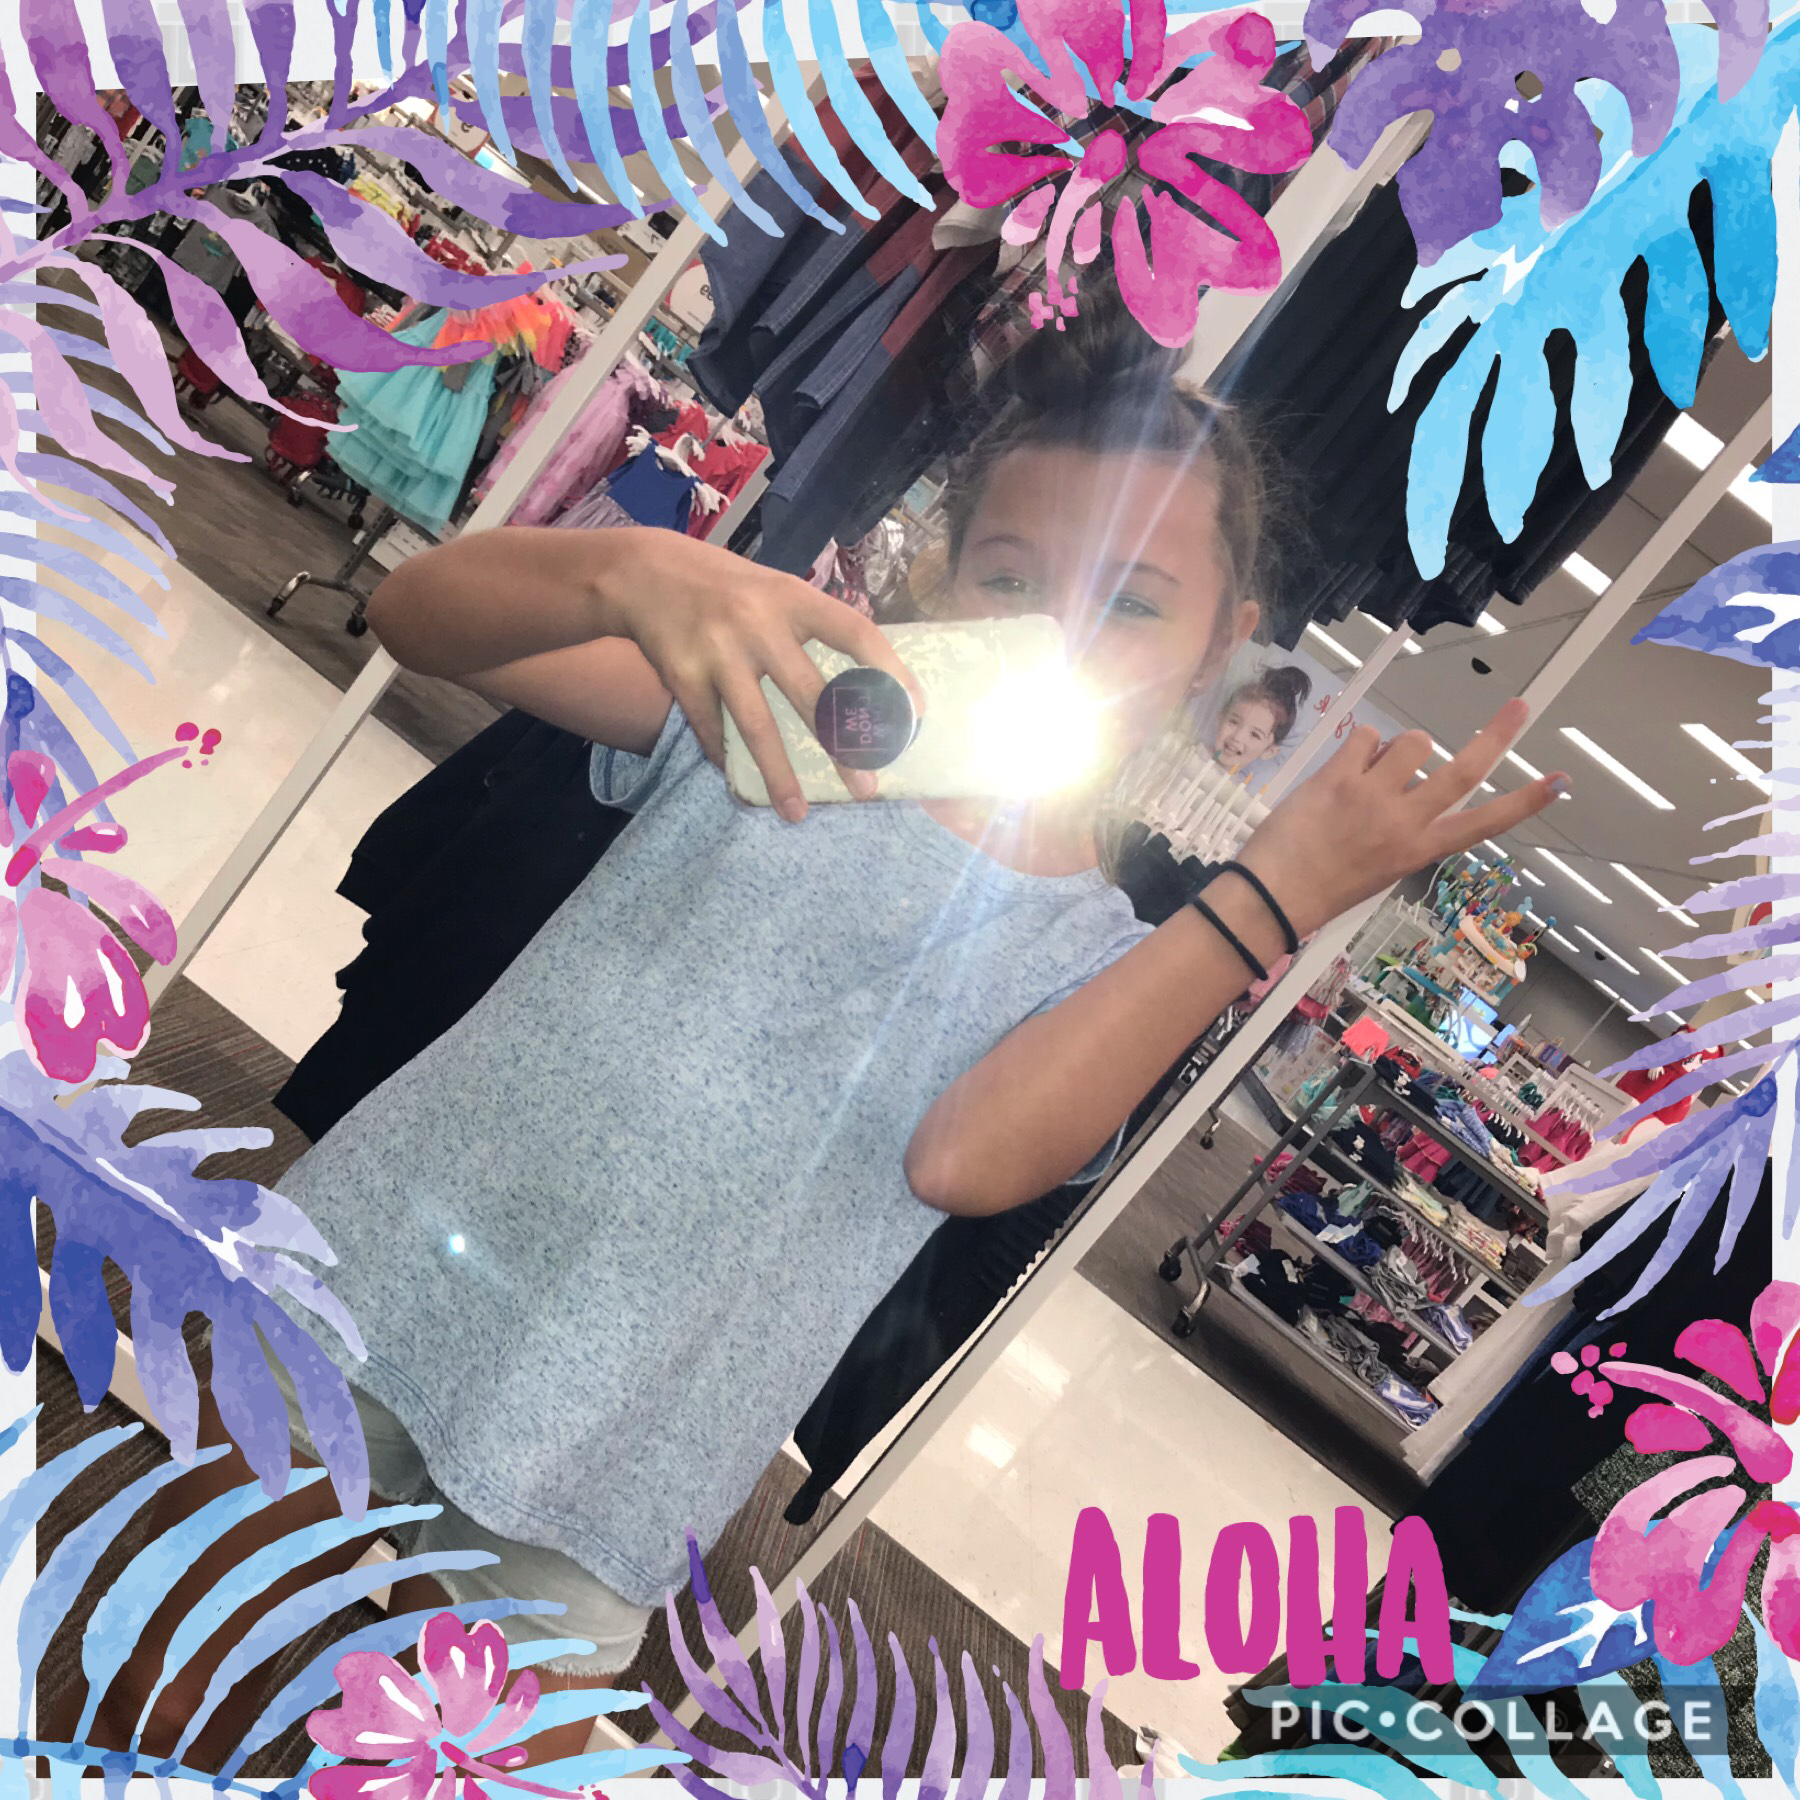 Happy Summer y'all! Love all of you so much! If it wasn't for you guys I wouldn't have 167 followers! 😘🥰❤️💋🥳🤩🎉🎊💞💓💗💖💘💝❣️💕🔐